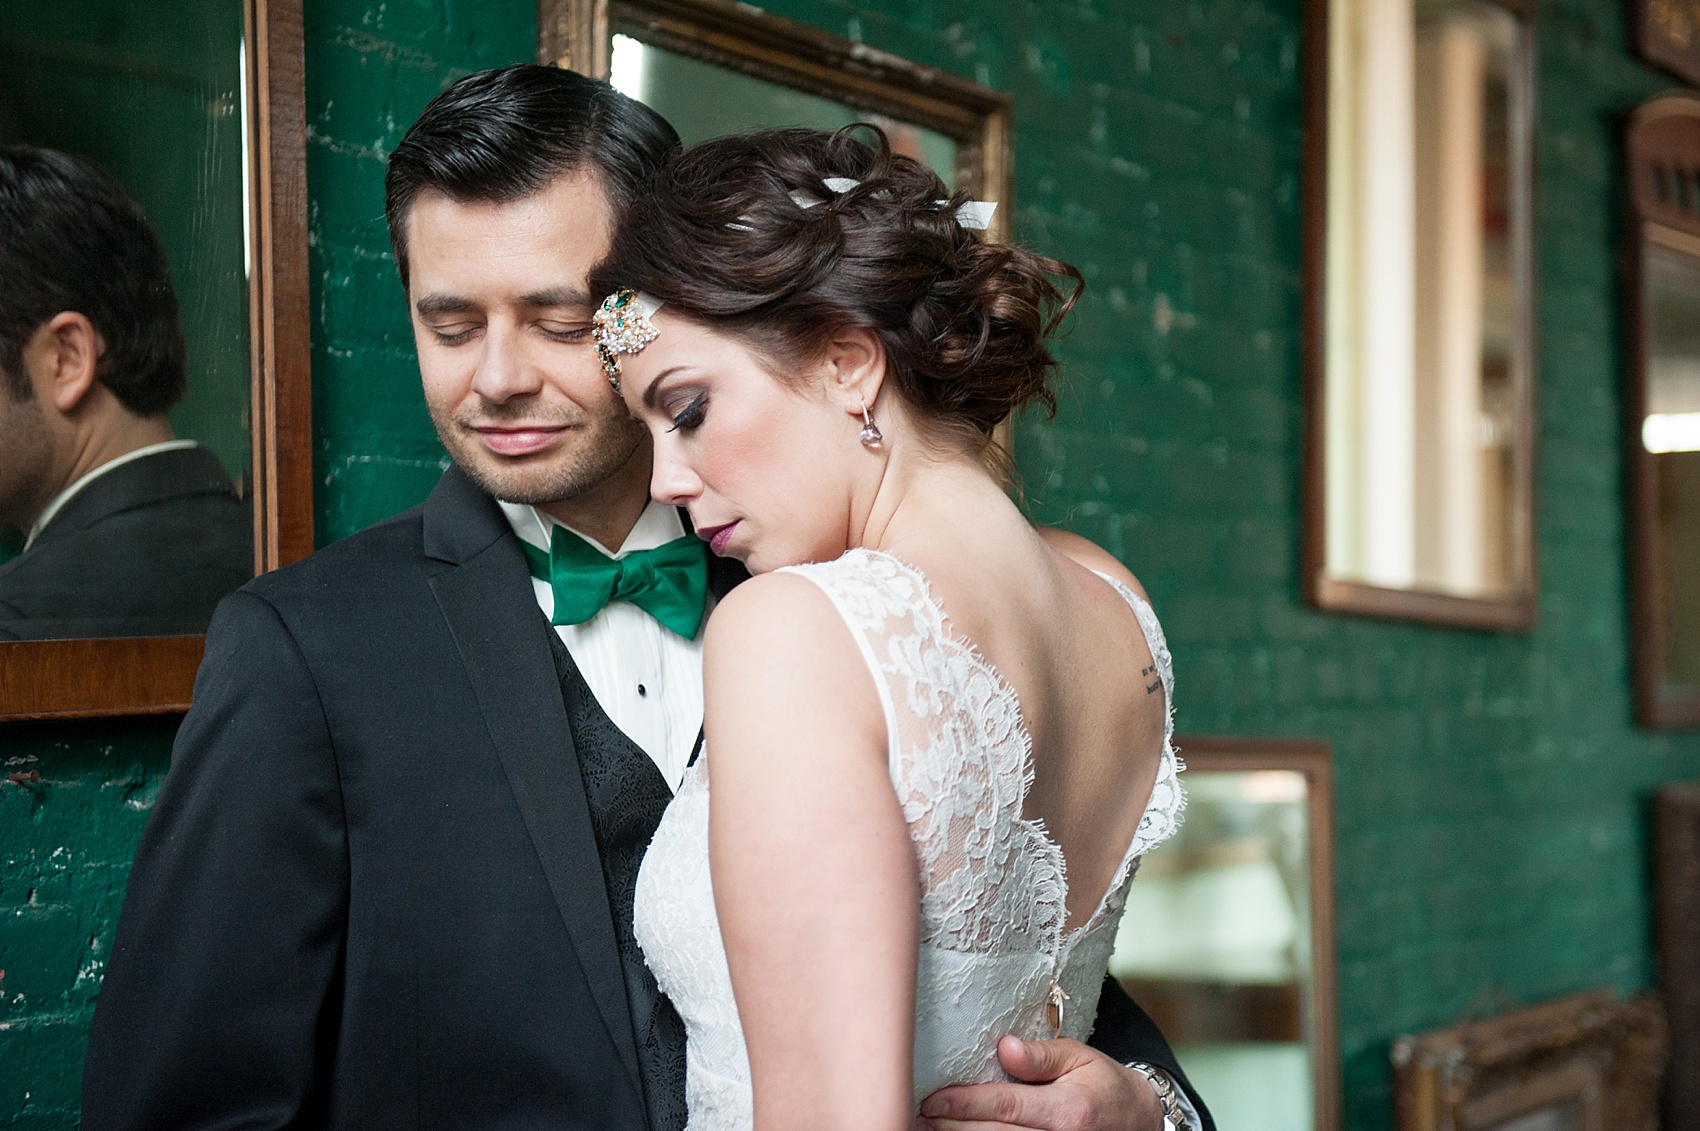 Bride and groom portraits at the Metropolitan Building vintage 1920's wedding. Images by Mikkel Paige Photography.